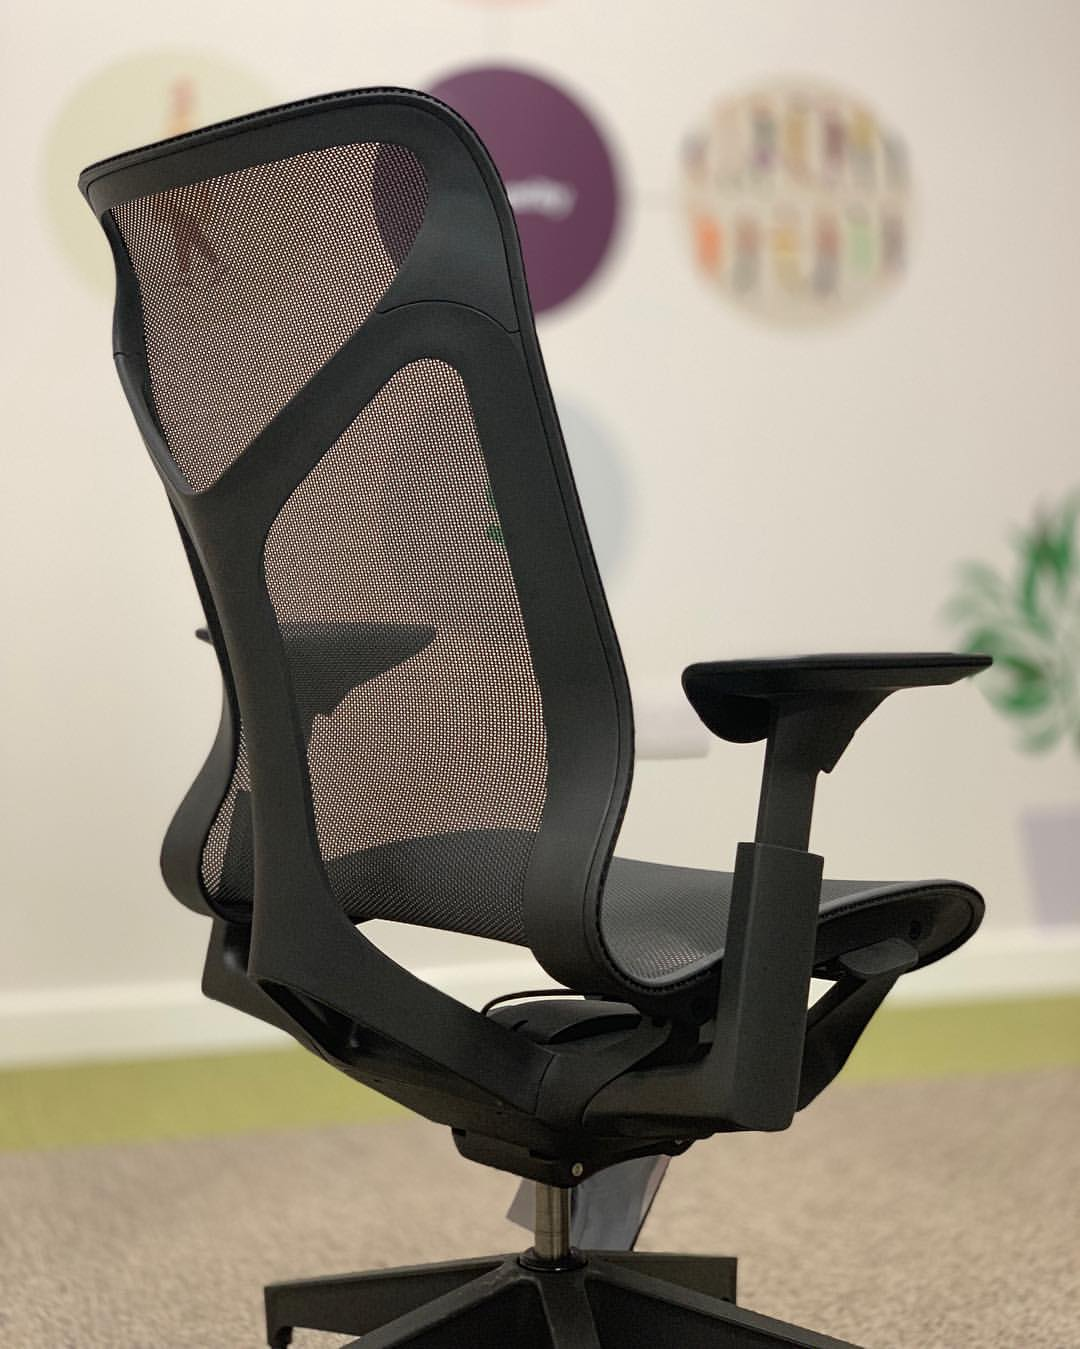 How to Choose an Office Chair for a Heavy Person